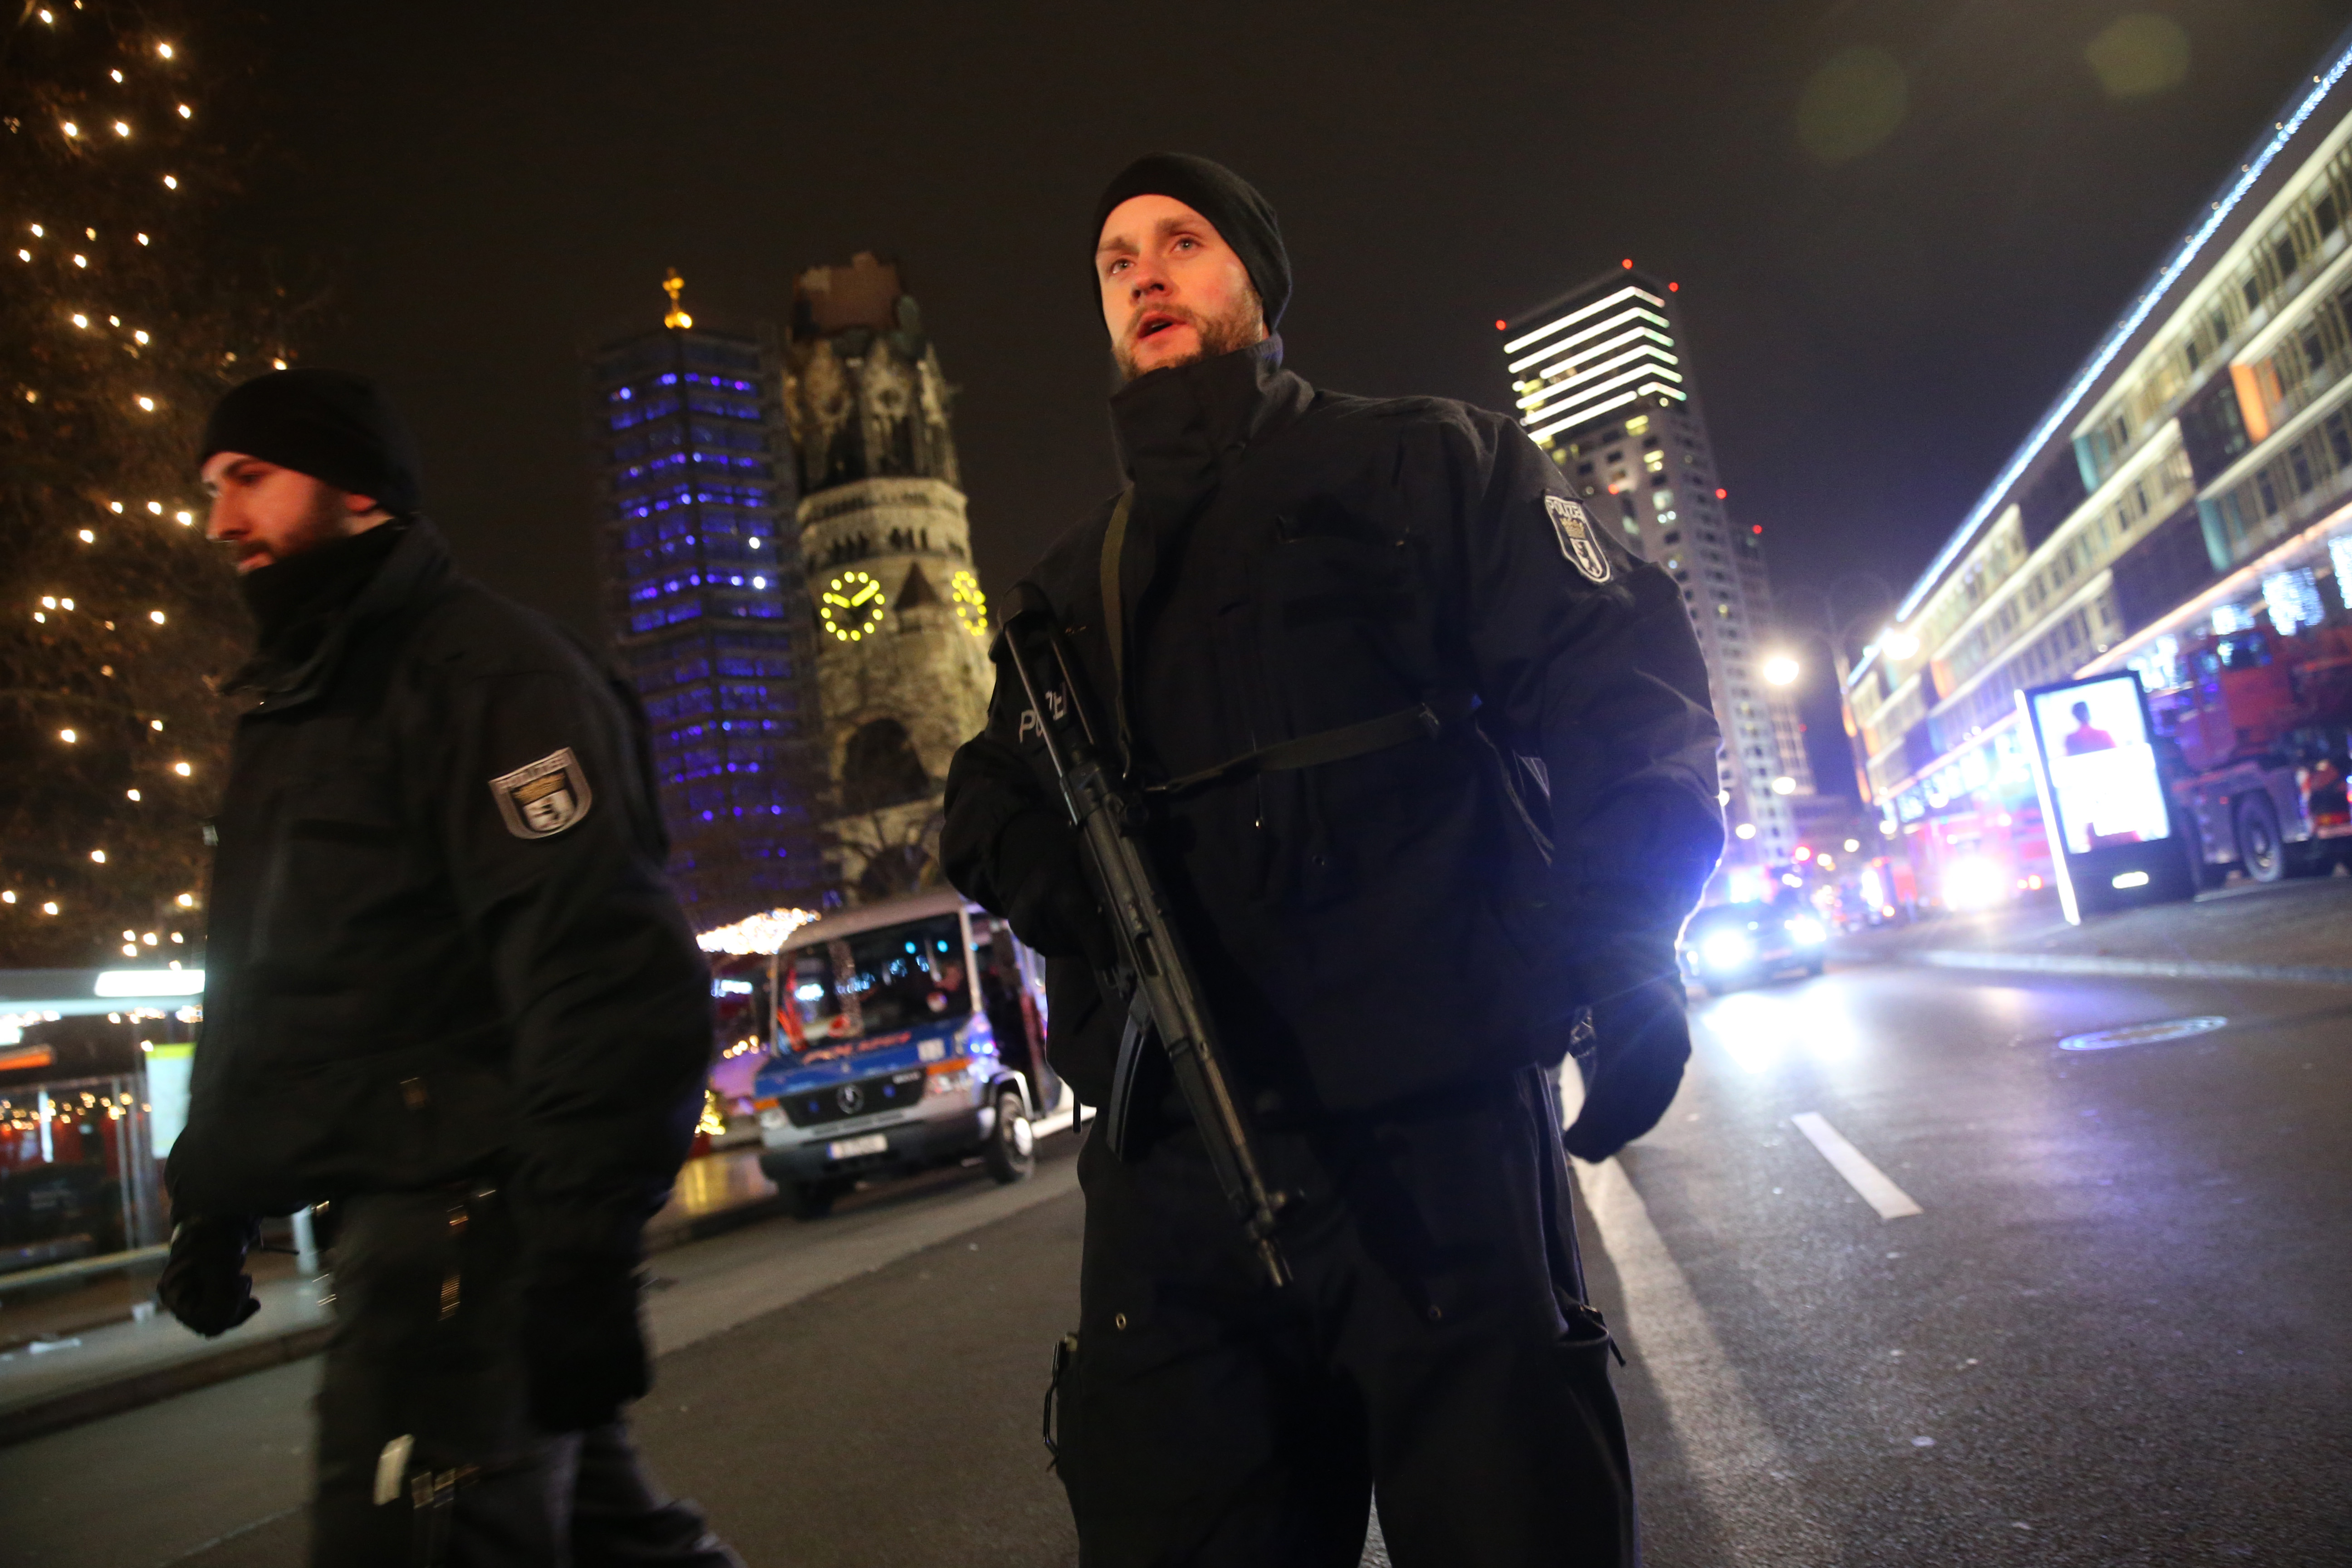 Security stands guard after a lorry plowed through a Christmas market on Dec. 19, 2016 in Berlin